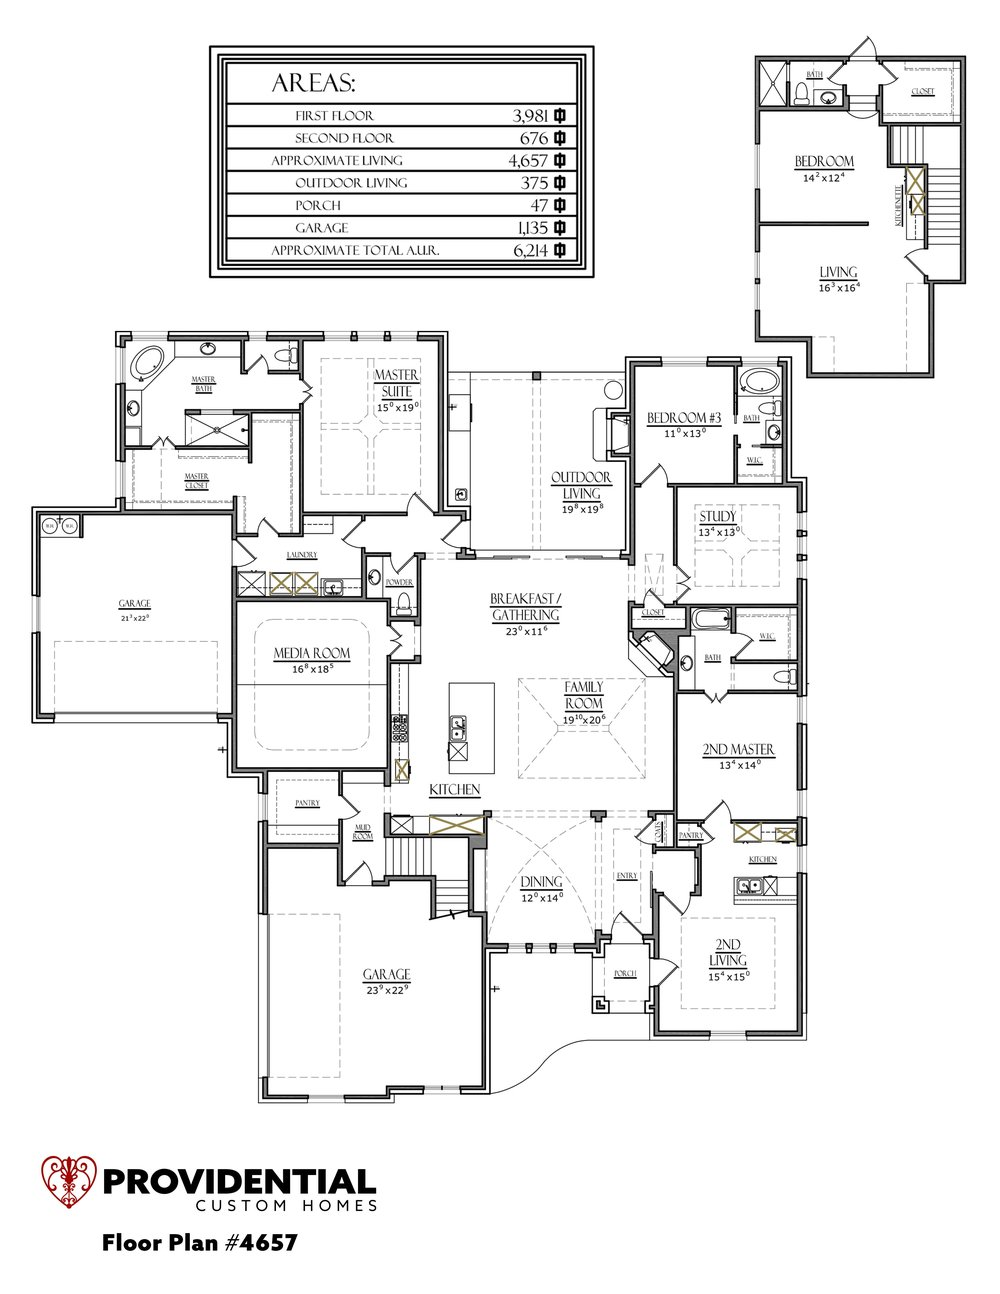 The FLOOR PLAN #4657.jpg